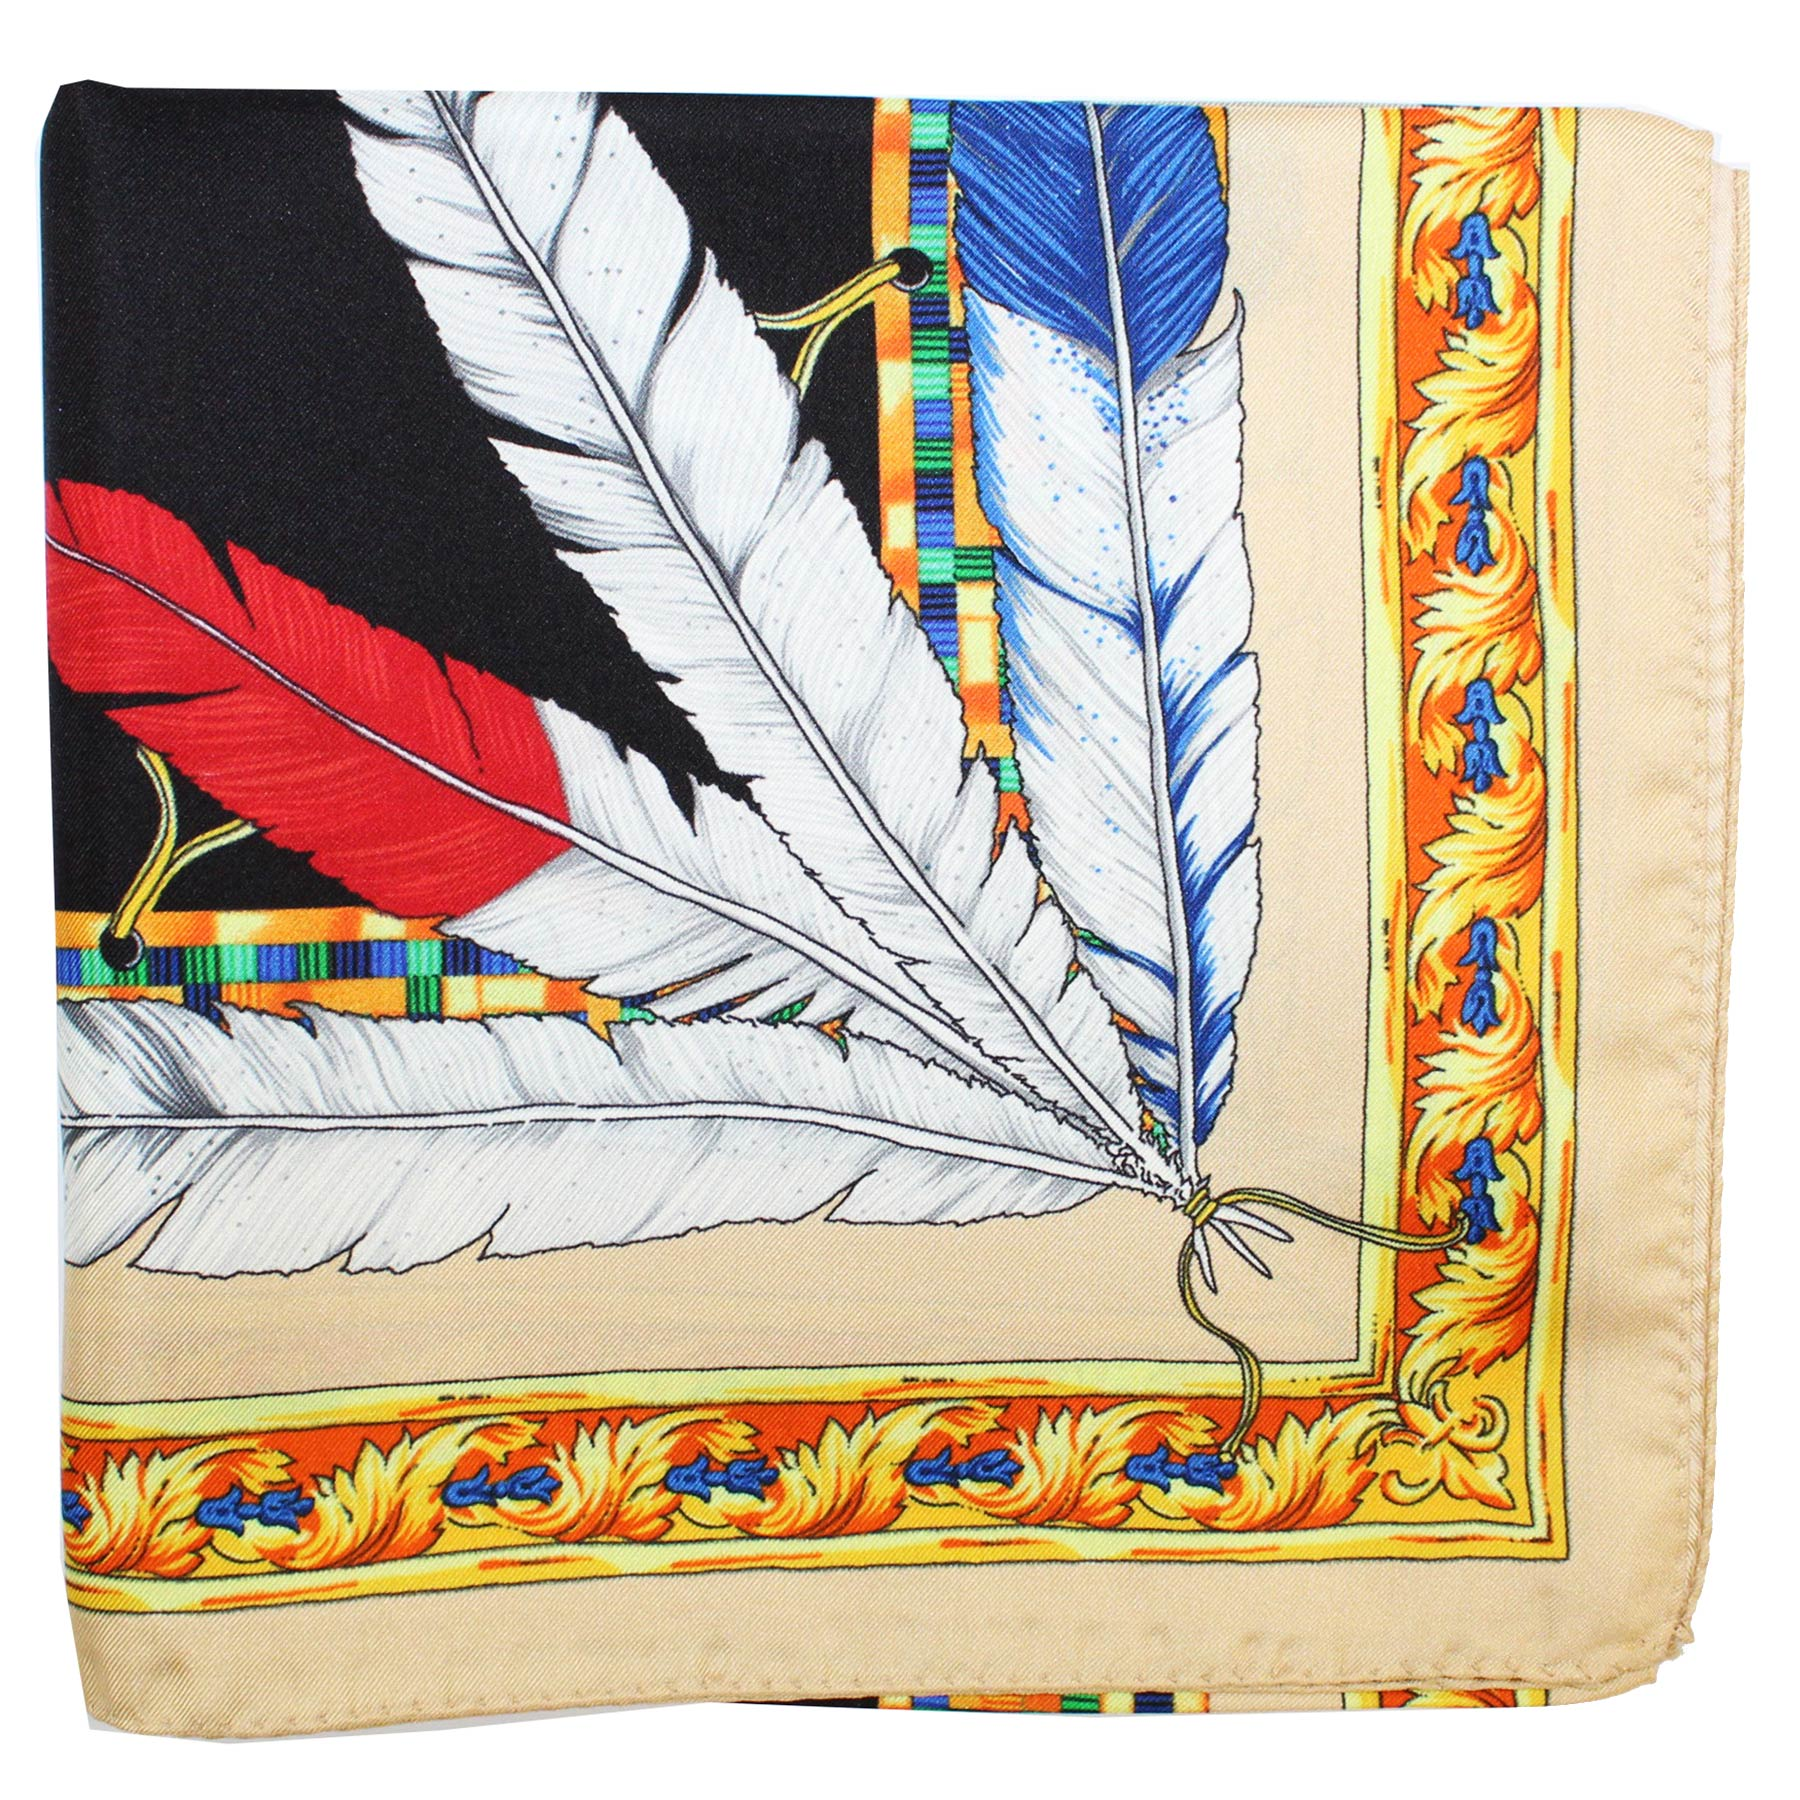 Versace Silk Scarf Feather Headdress Design - Large Square Scarf